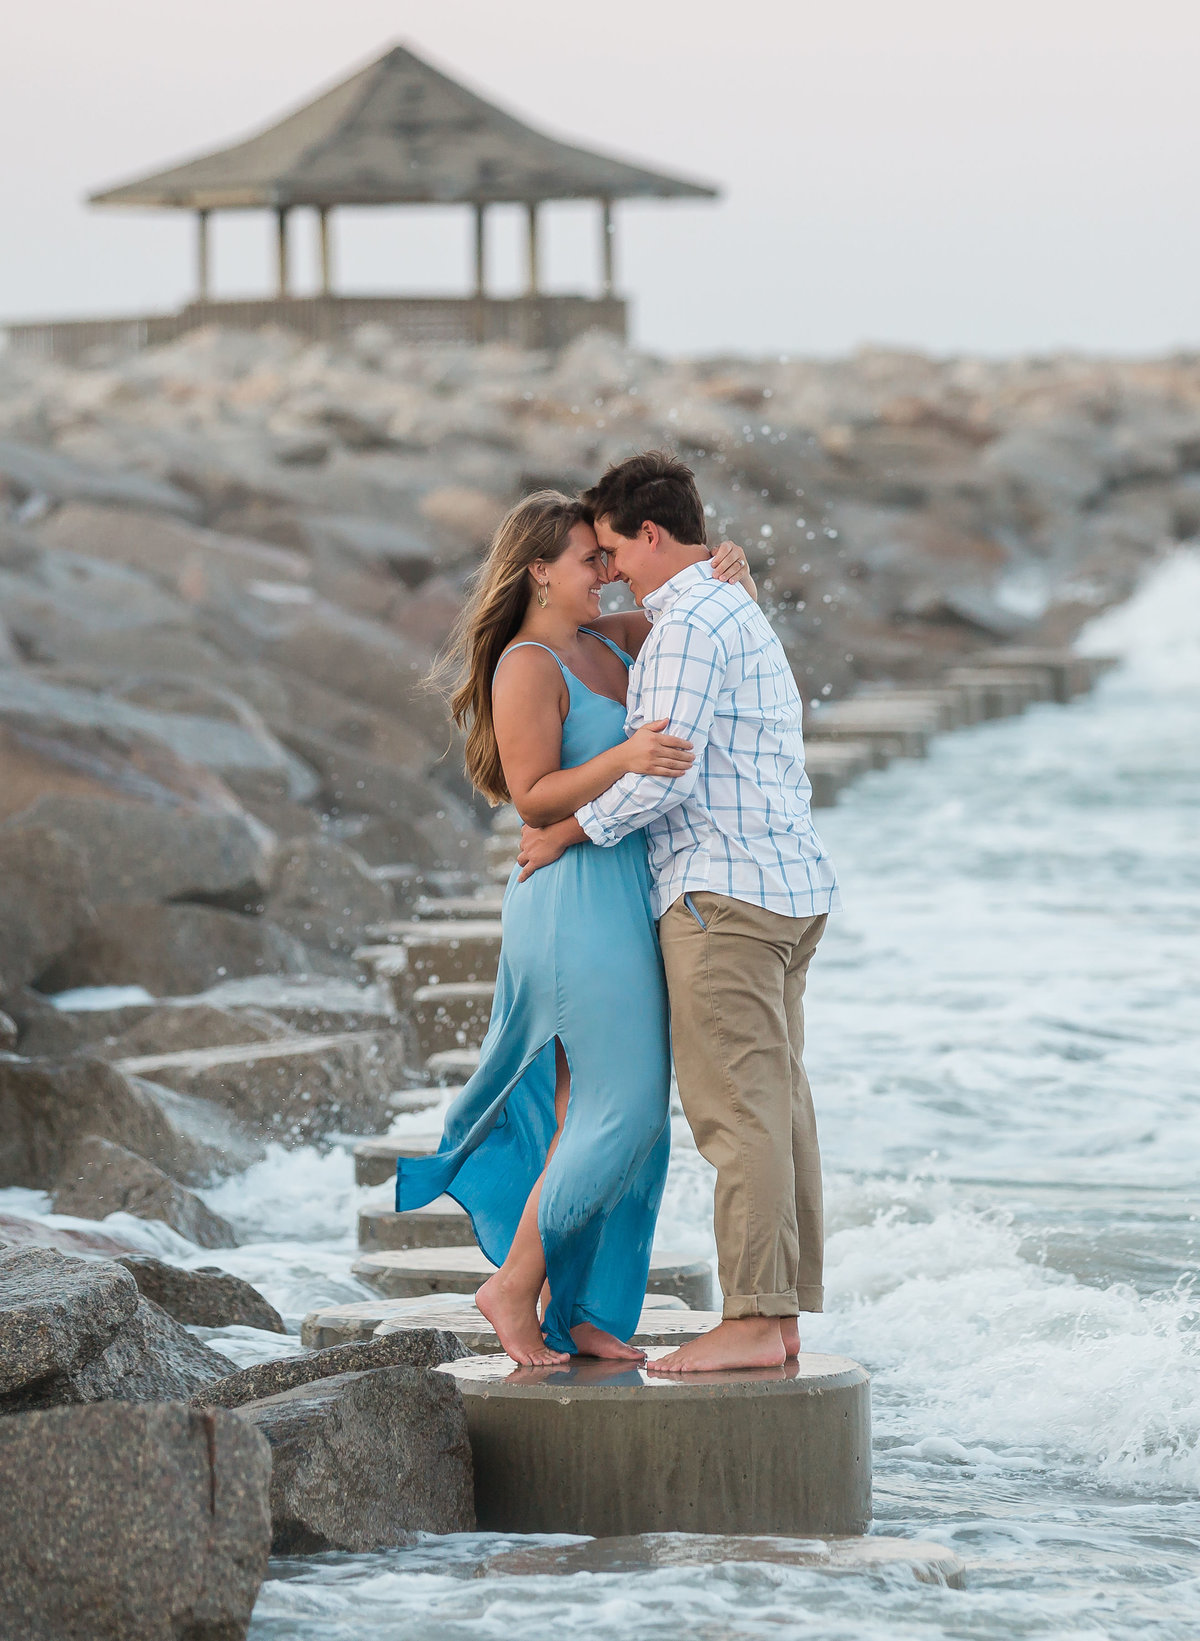 Wilmington NC Wedding Photographers, The Joyner Company, Wilmington NC Wedding Photo and Video, North Carolina Wedding Photo and Video team, Wedding Photographers, Destination Wedding Photographers